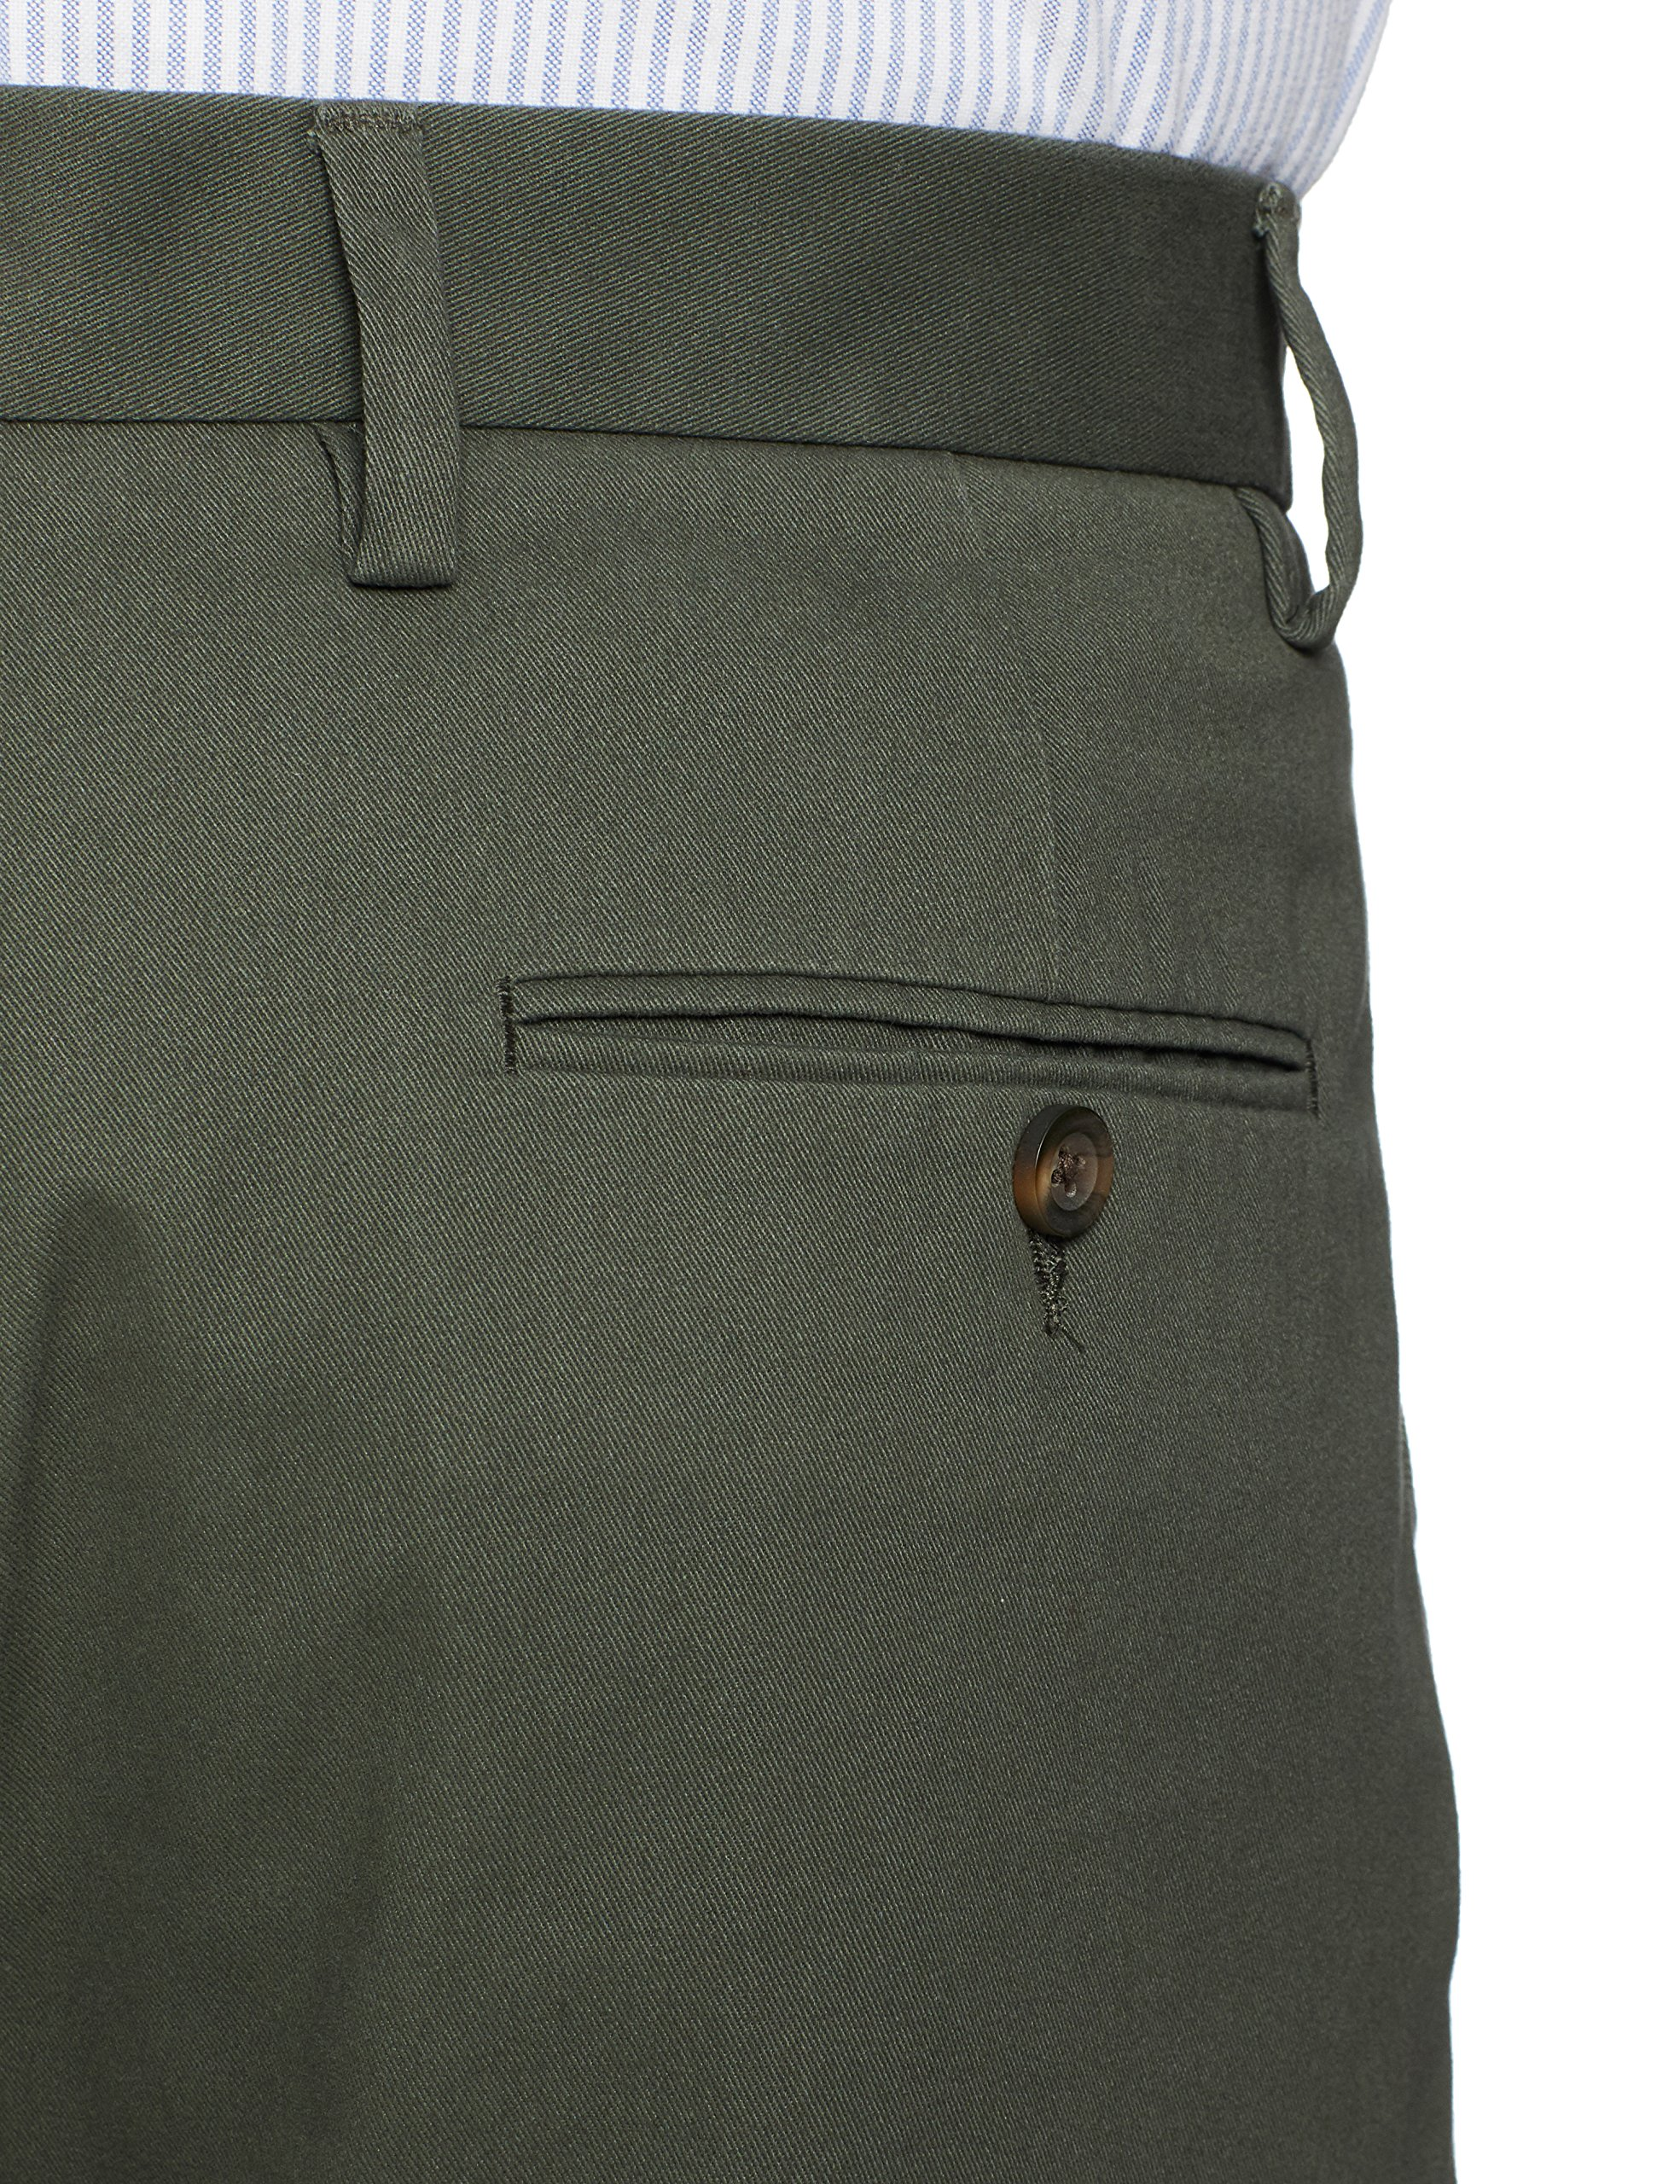 Amazon Essentials Men's Classic-Fit Wrinkle-Resistant Pleated Chino Pant, Olive, 36W x 32L by Amazon Essentials (Image #5)